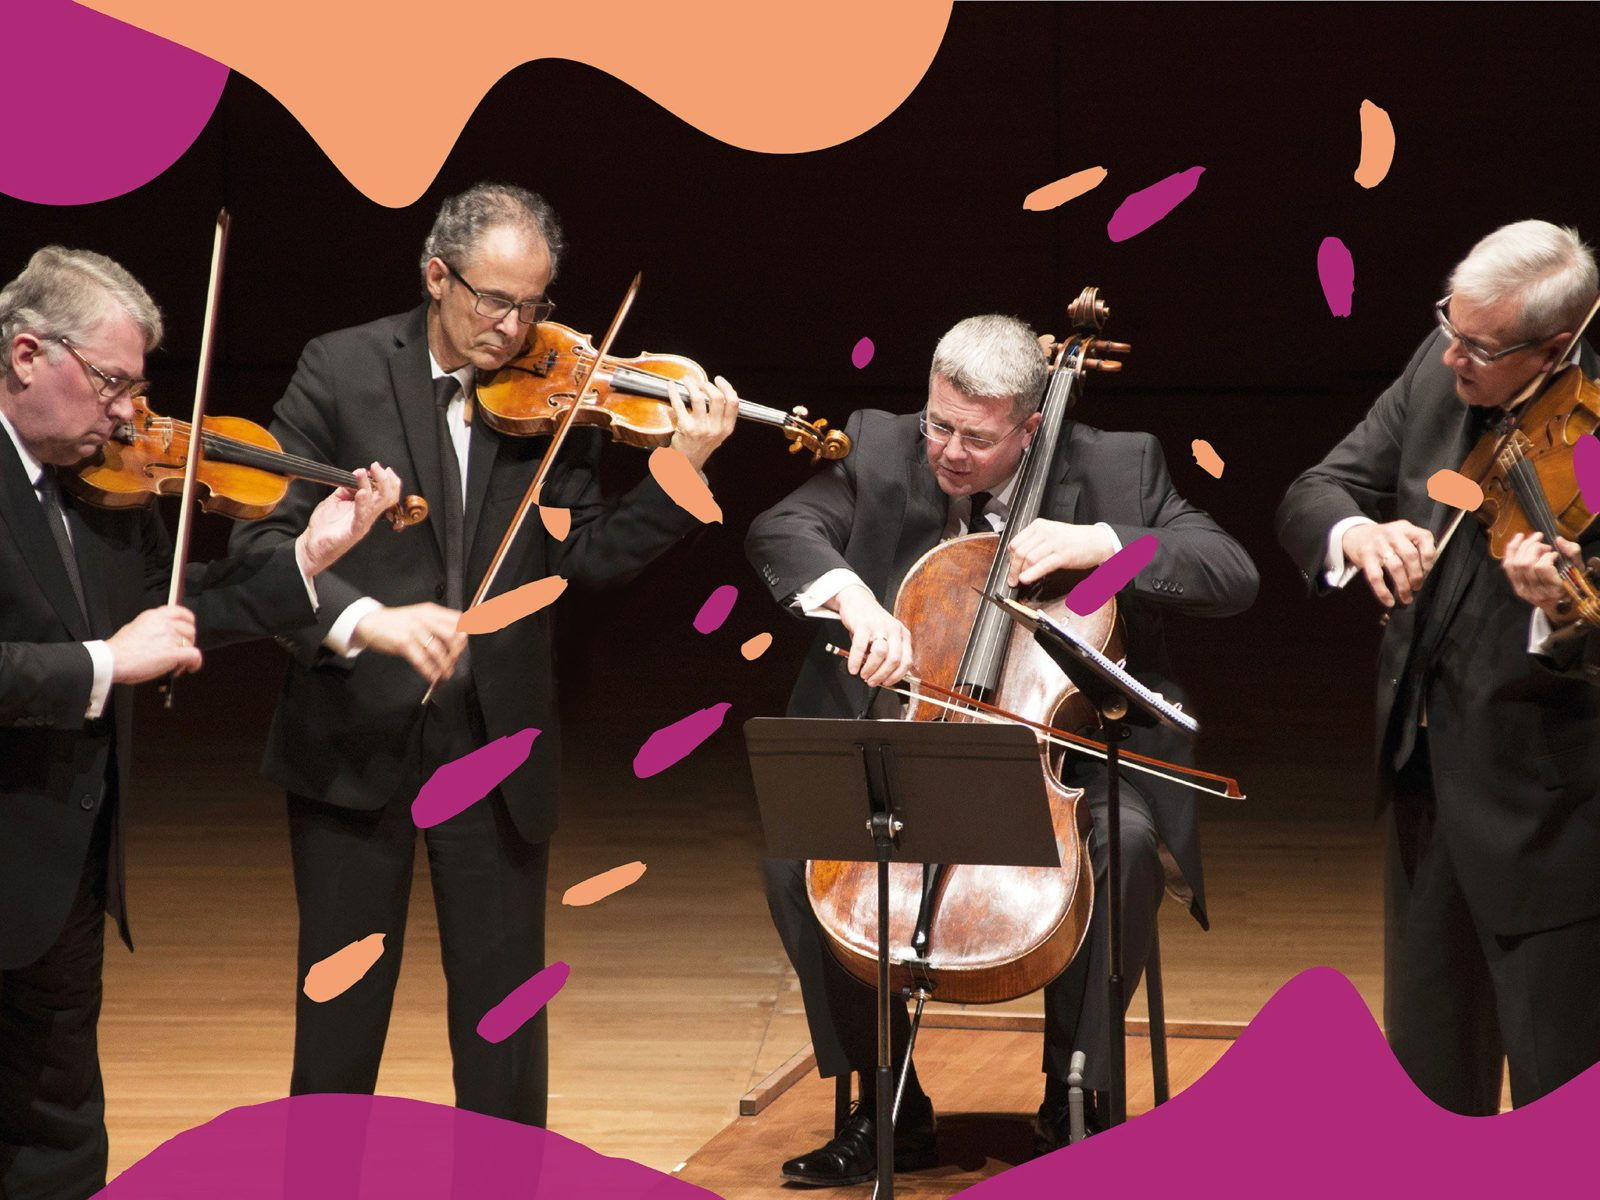 After an absence of 19 years, the Emerson String Quartet makes a long-awaited return to Australia.